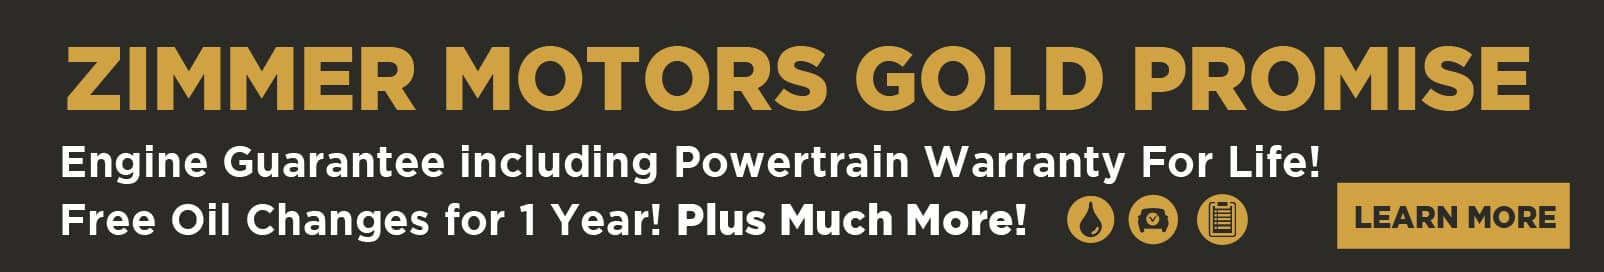 Zimmer Motors Gold Promise - Engine Guarantee including Powertrain Warranty for Life, Free Oil Changes for 1 year and Much More